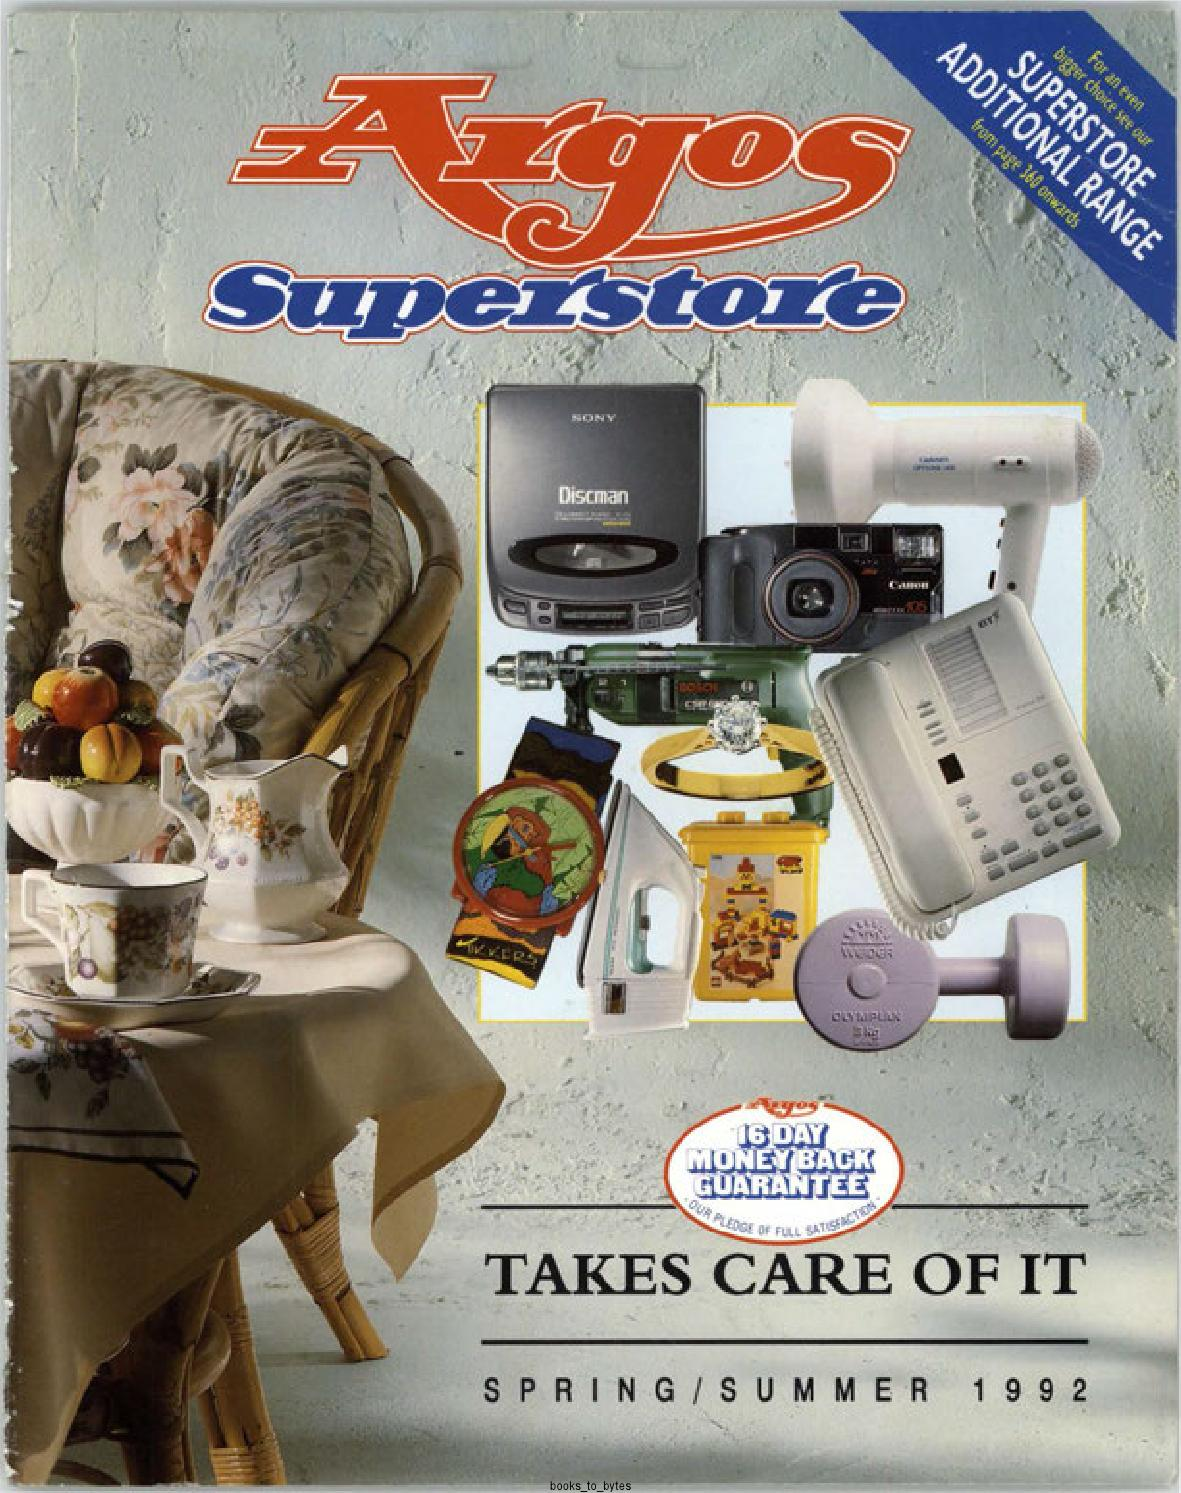 Argos Superstore 1992 Spring/Summer by Retromash - issuu on